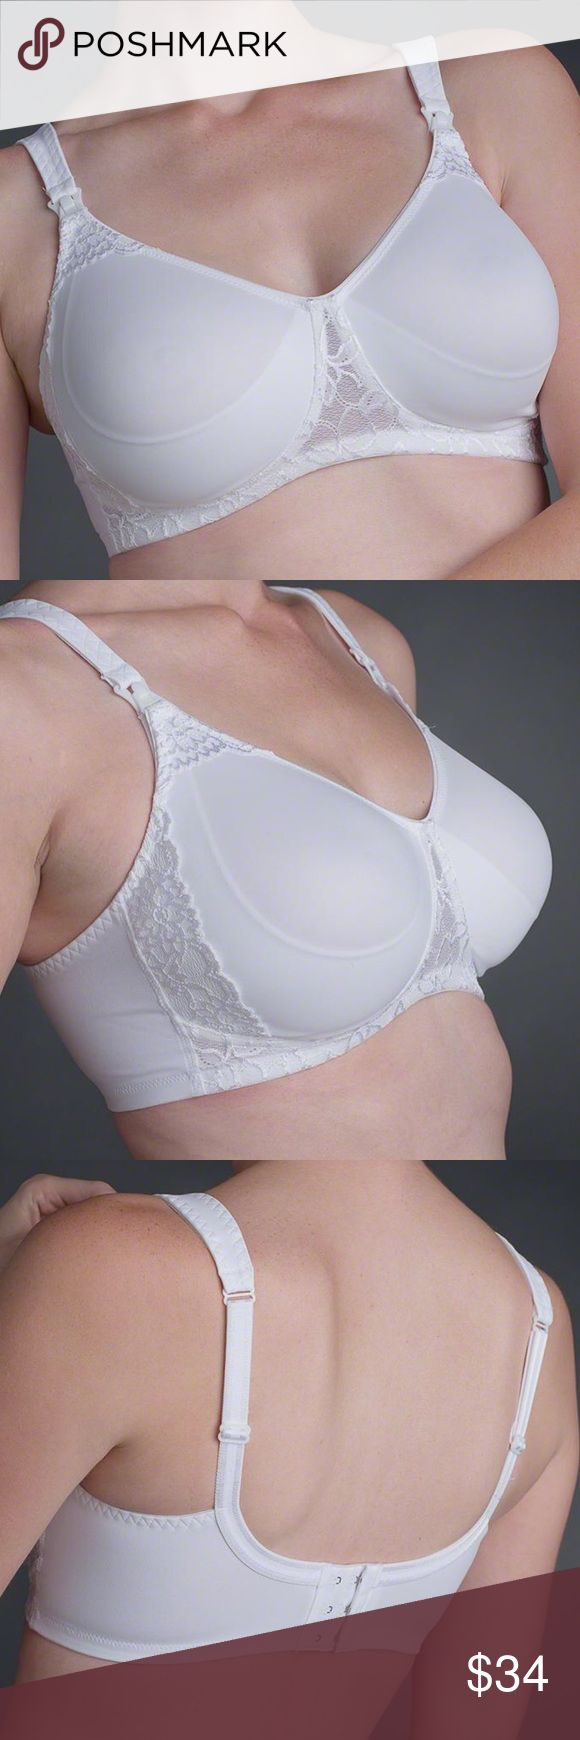 A N I T A • B R A Brand new just removed the tags! retails $76  The Anita nursing bra is a seamless molded cup bra that provides excellent support without an underwire.   Features: Soft, breathable microfibre with stretch lace. Stretch and adjustable straps, firmly attached to the breast support Cups C-H, 32-48 Perfect fit through to the larger sizes Straps get wider with increasing size for more support 3-position back-fastener  75% Nylon, 25% Elastane Anita Intimates & Sleepwear Bras